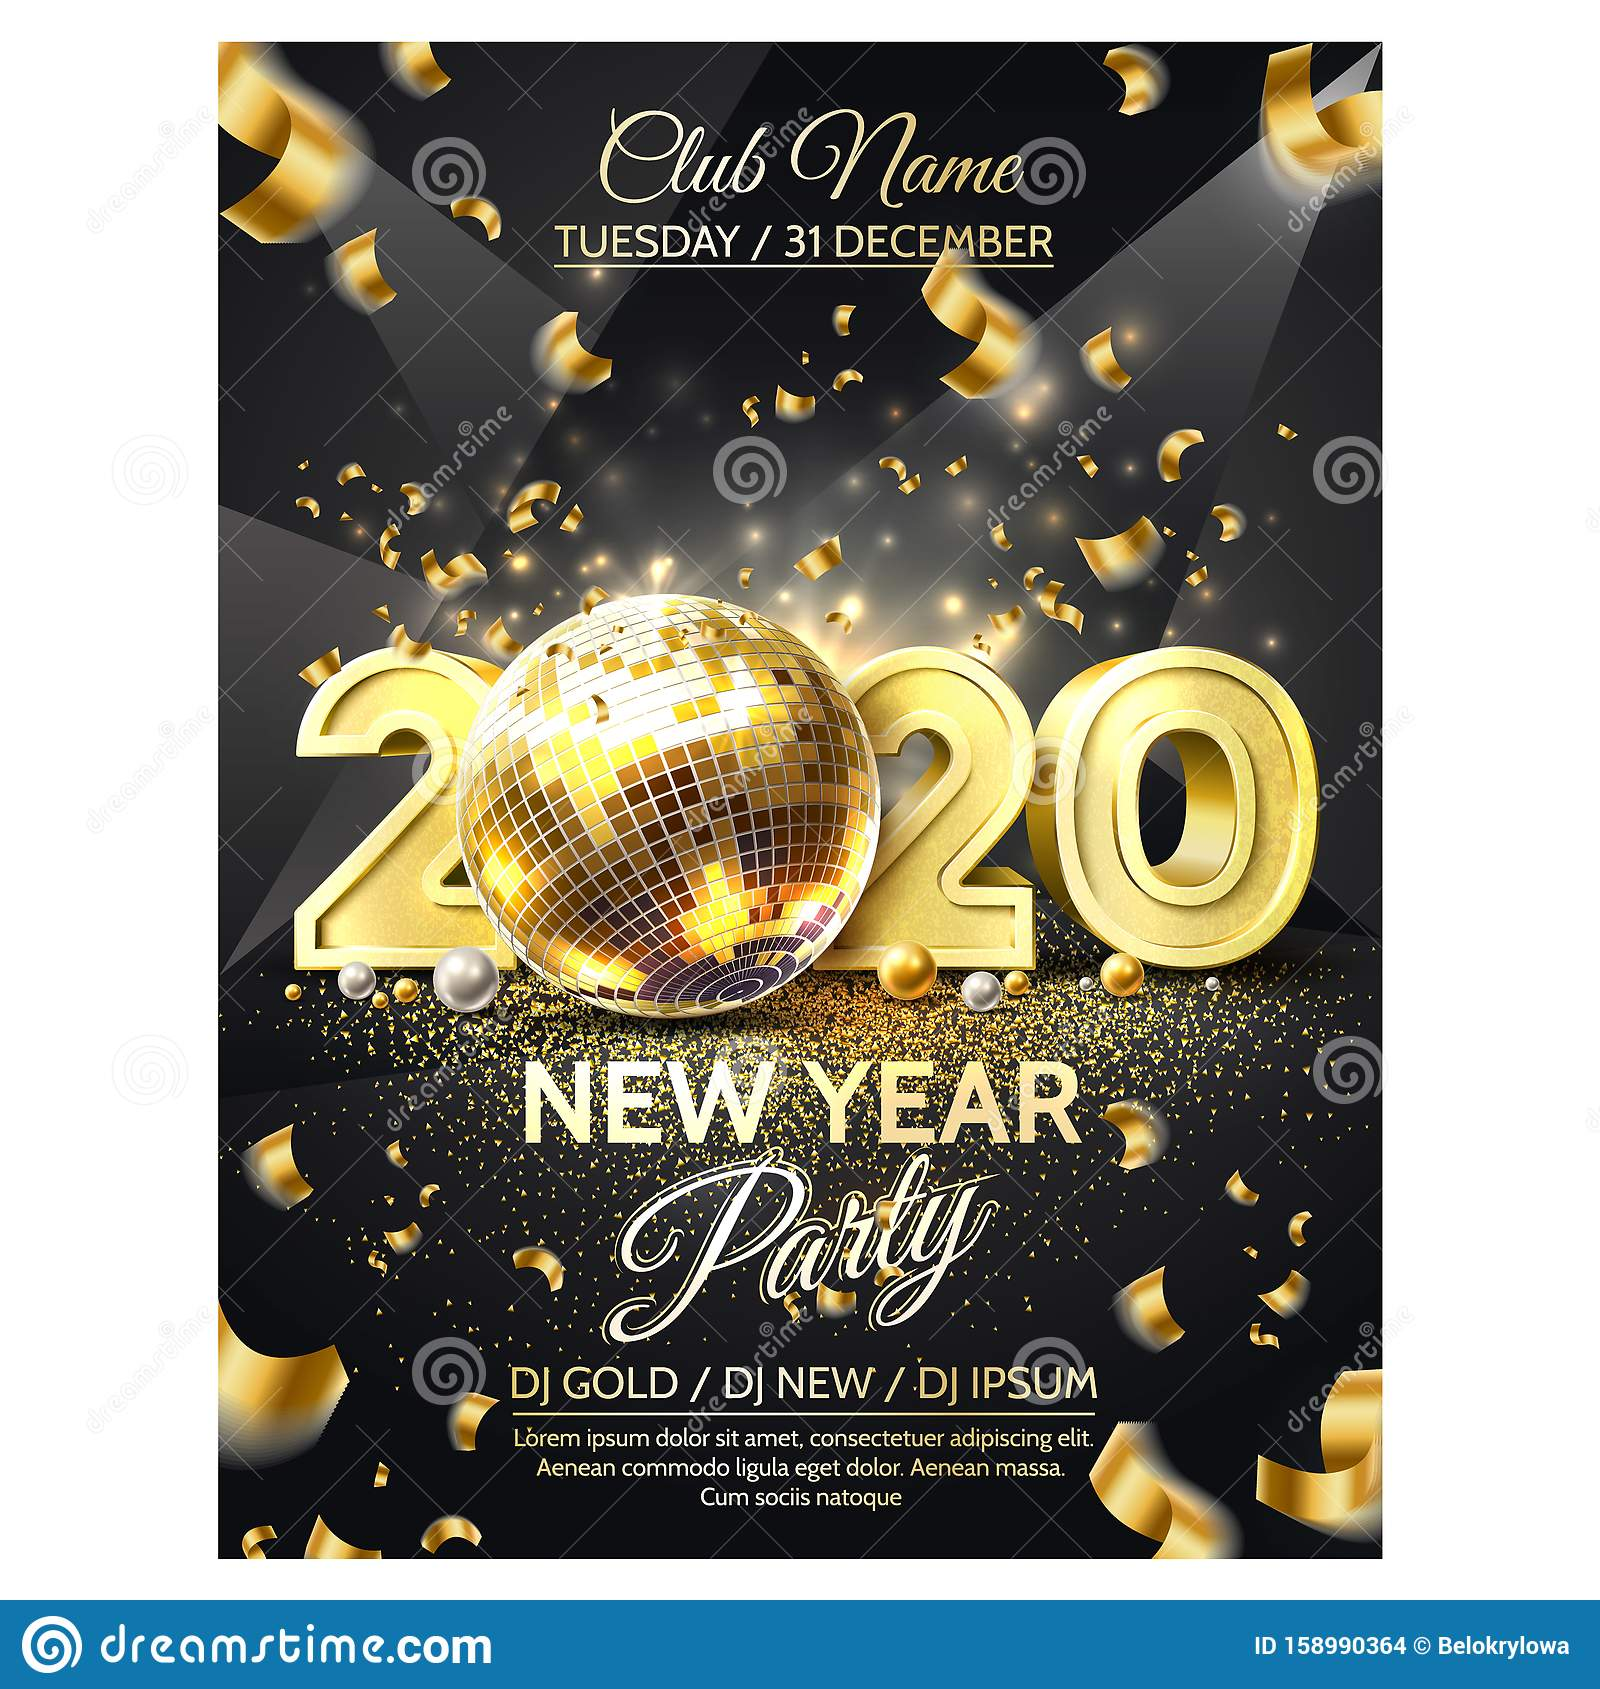 new year party stock illustrations 350 392 new year party stock illustrations vectors clipart dreamstime https www dreamstime com vector new year party golden disco ball luxury new year party poster realistic disco ball d golden numbers traditional winter image158990364